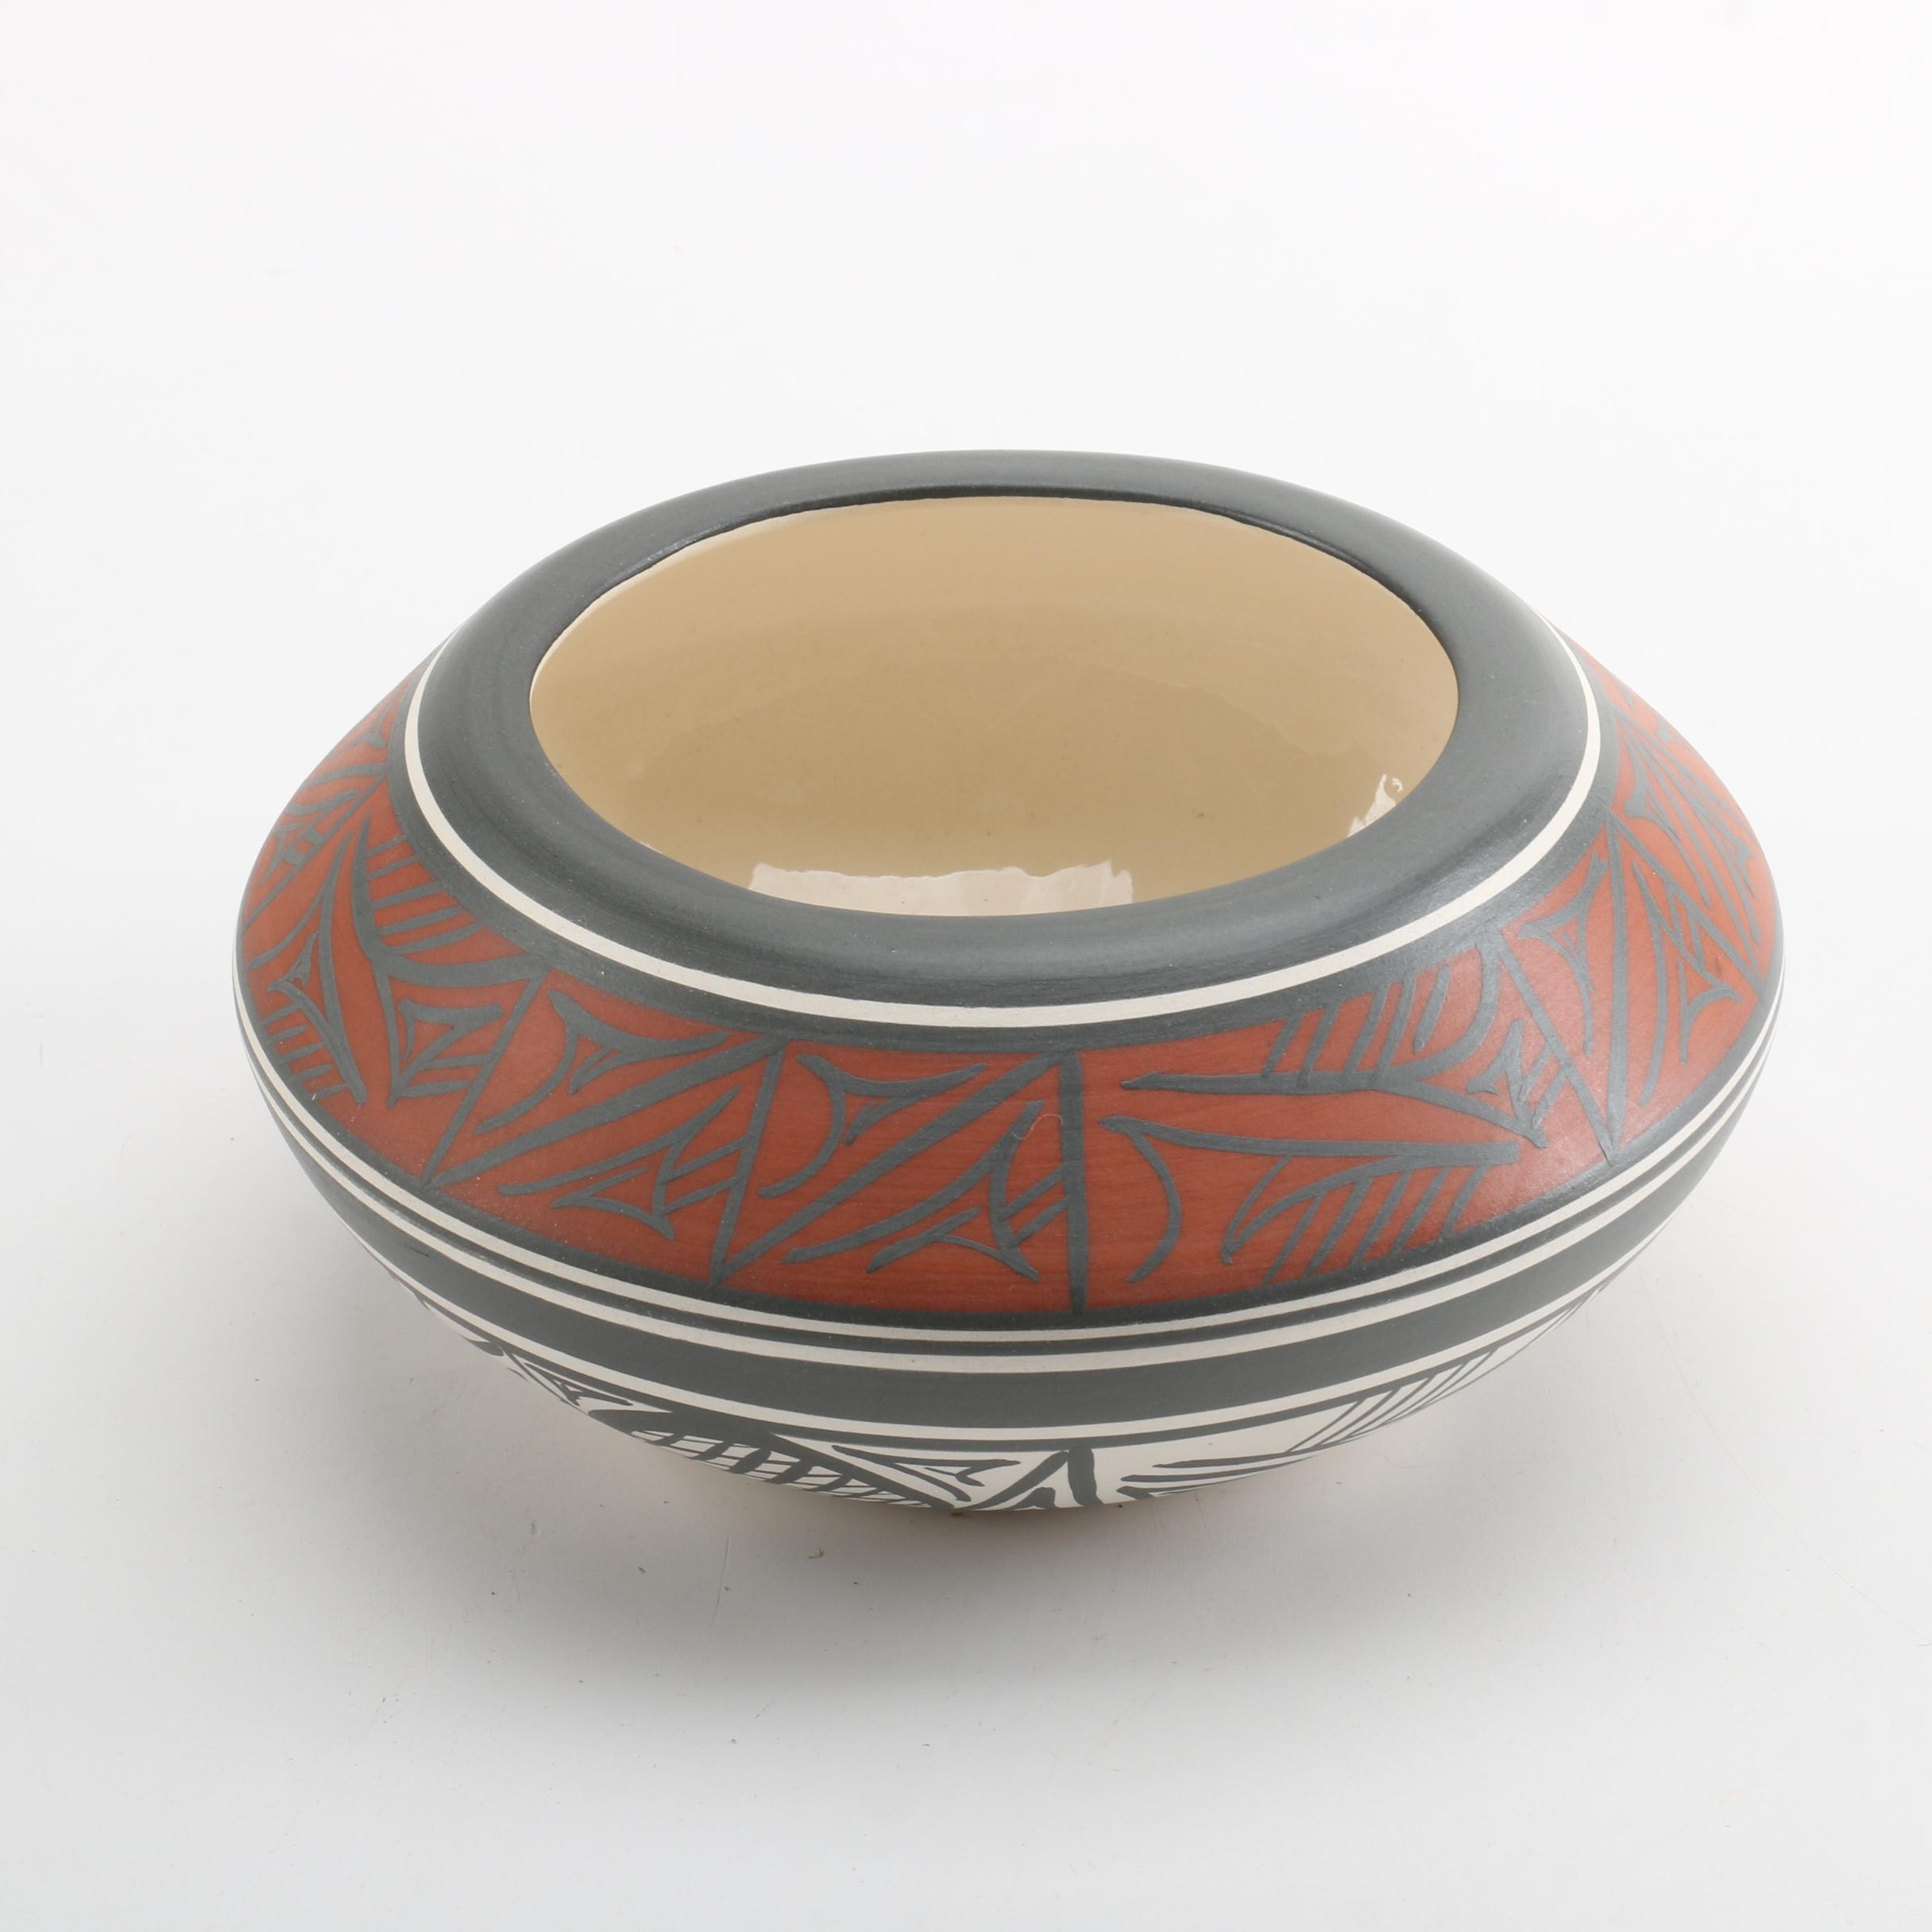 Signed Navajo Pottery Seed Bowl